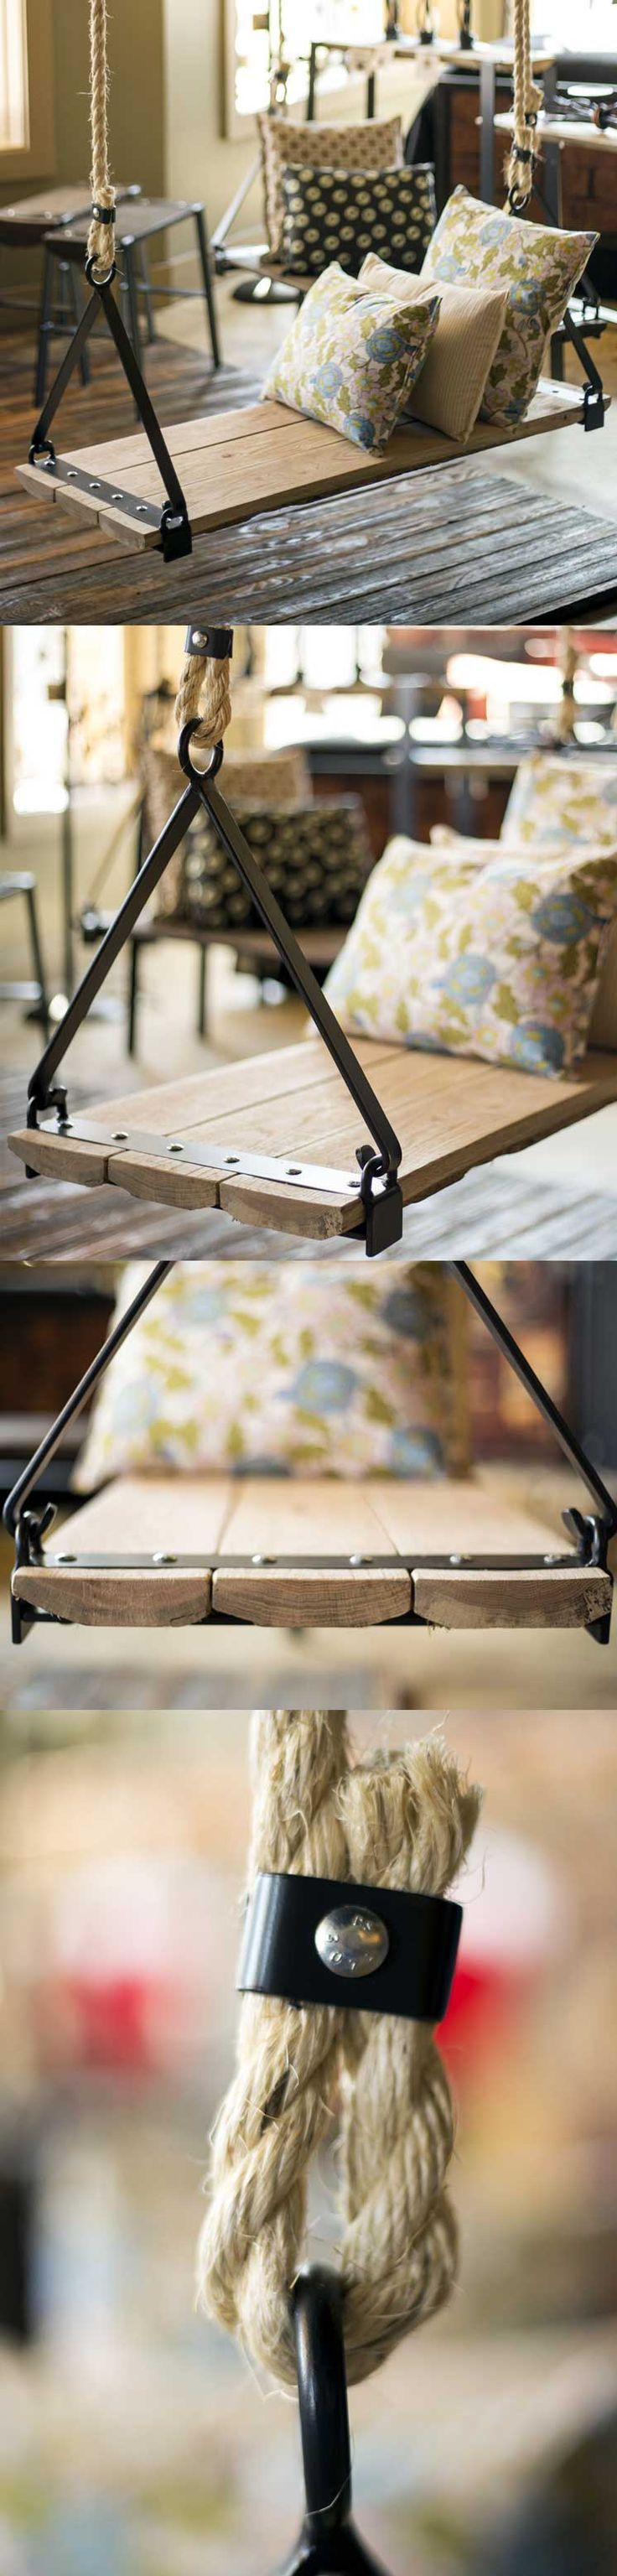 """It's time to swing! While this lovely """"slab"""" swing is great for a porch or garden...it's a great inside swing and comes in several sizes. 8 feet of 3/4"""" hemp rope for each side comes standard with this beautiful swing. Find the Urban Forge Swing as seen in the Outdoor Gliders & Swings http://www.timelesswroughtiron.com/Urban-Forge-42-inch-Iron-Swing-p/twi-sci-980-243-42in.htm"""